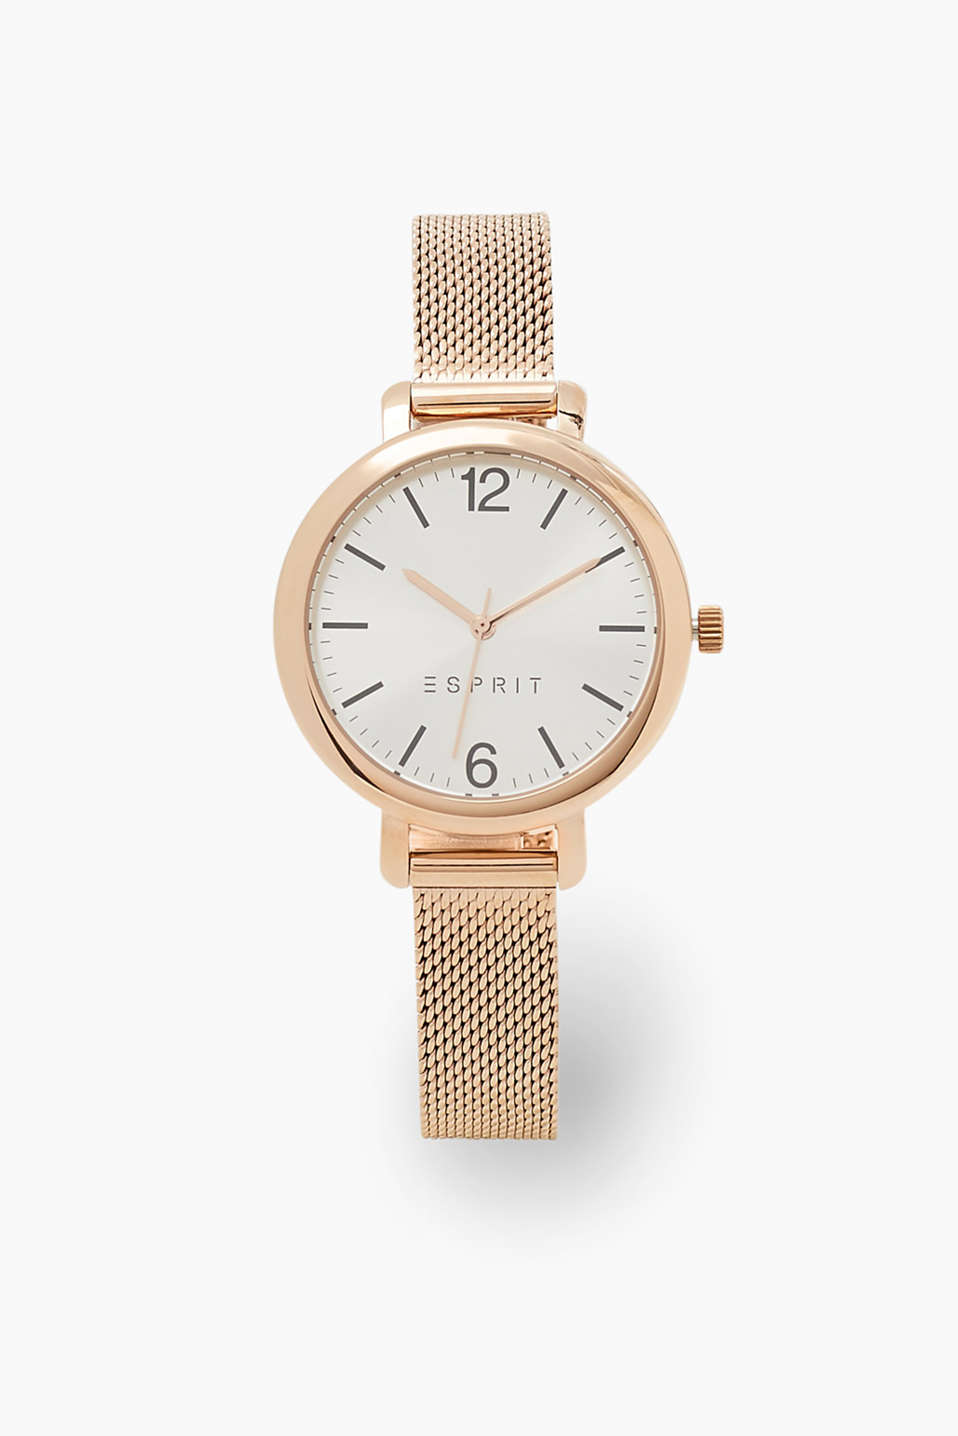 Au coloris or rose tendance : la montre au design minimaliste et intemporel